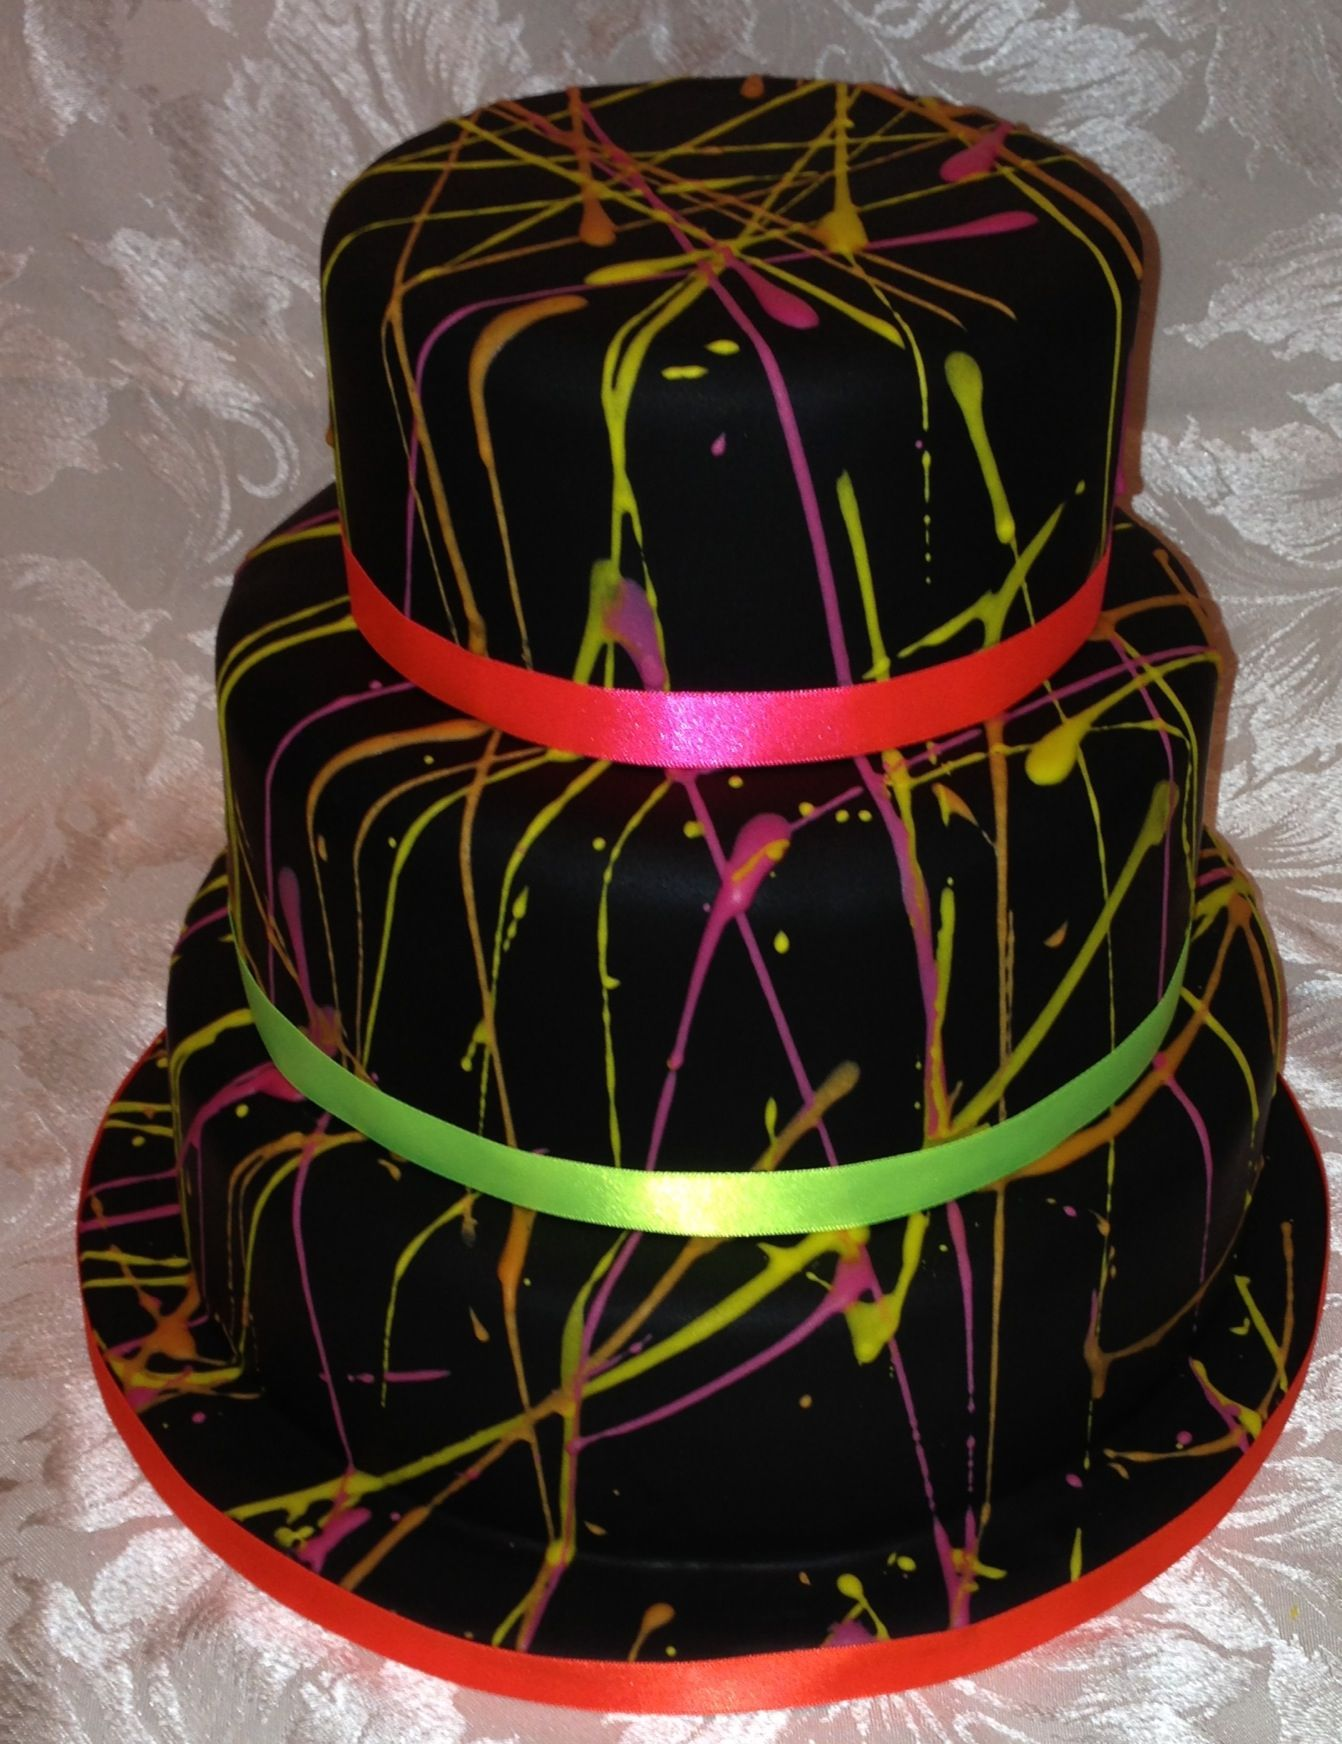 3 Tier Chocolate Fudge Cake Black Fondant With Neon Icing And Ribbon Also Has A Layer Of Smarties In The Centre